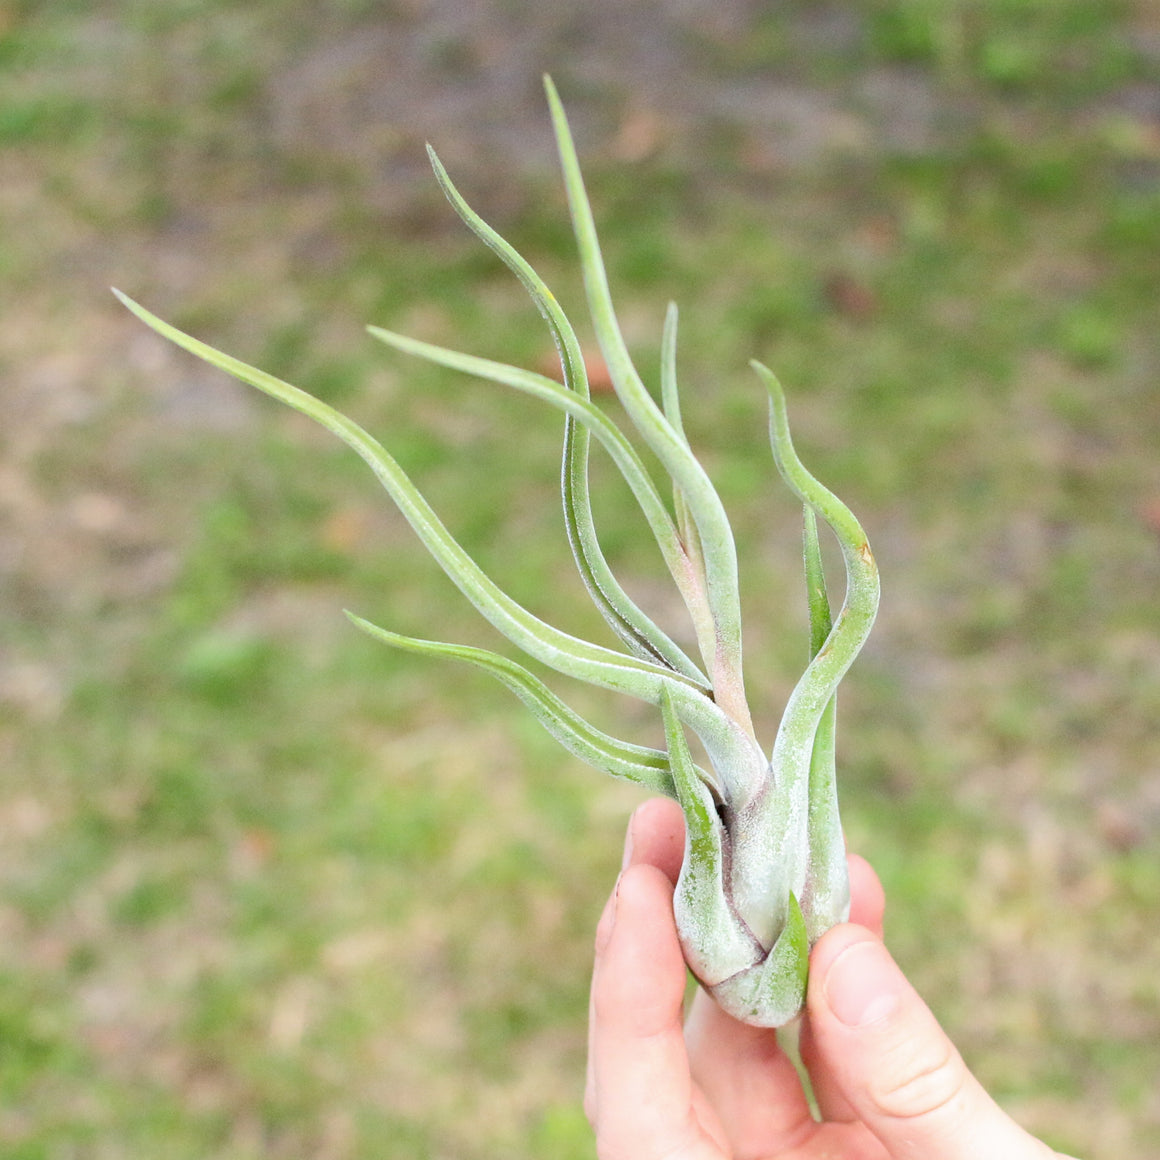 SALE - Tillandsia Caput Medusae - Set of 10 or 20 Air Plants - 70% Off